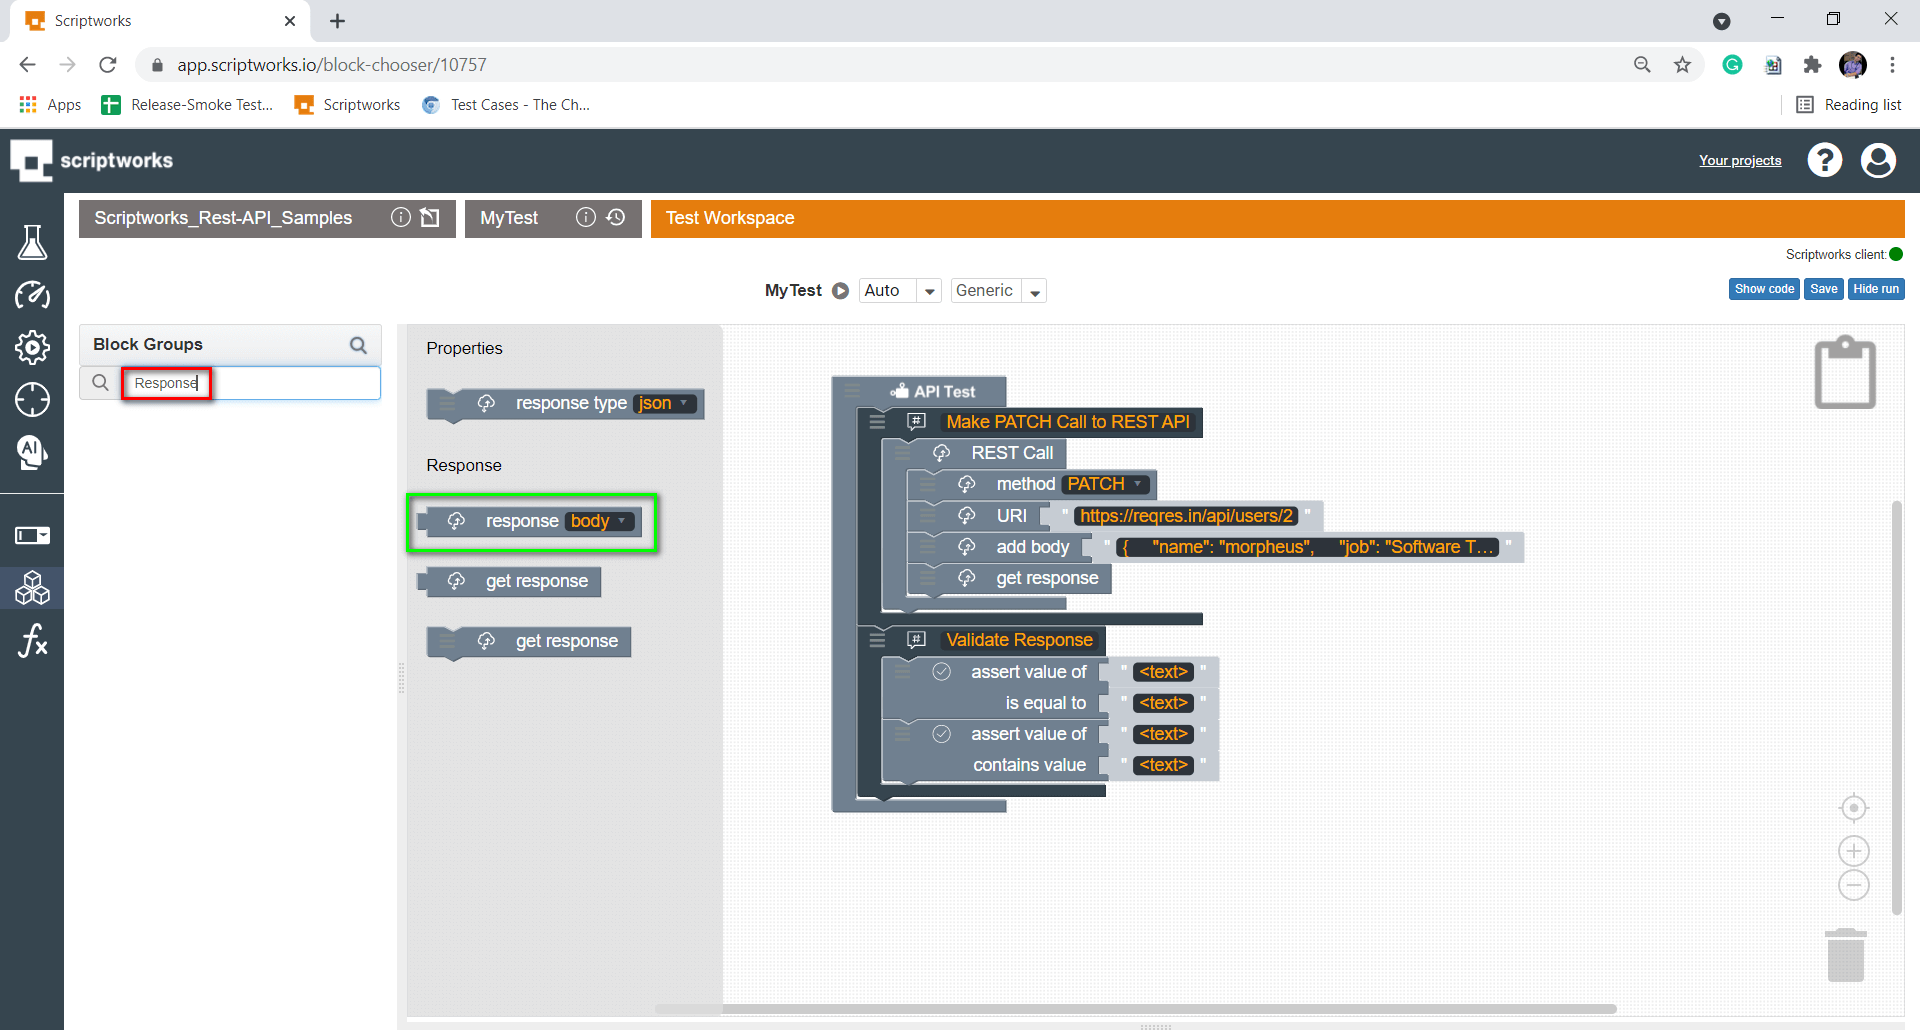 search response body from search box present on left hand side panel